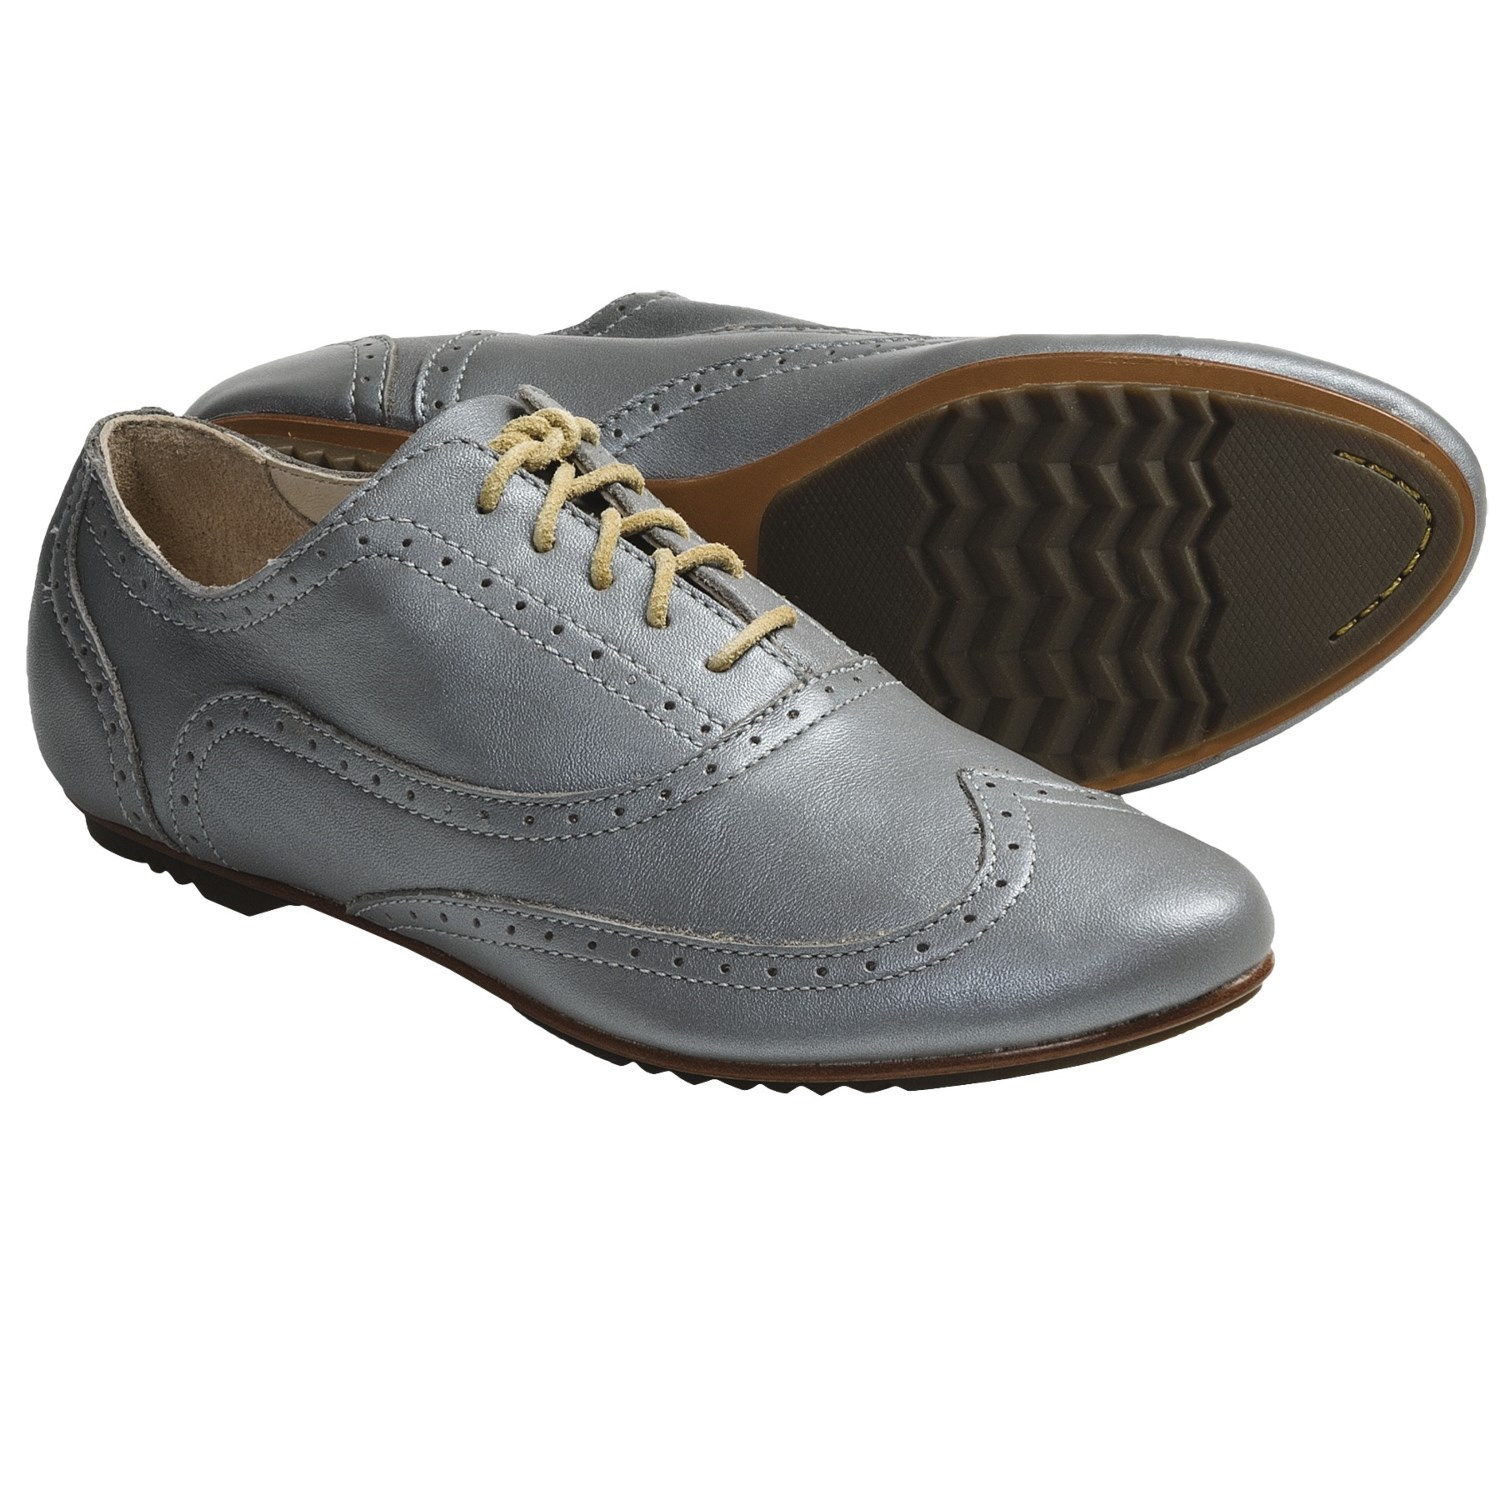 Oxford Shoes. The perfect blend of fashion and function, Oxford shoes will go as far as your style — and tread — will take you, keeping you comfy and classy the whole time.